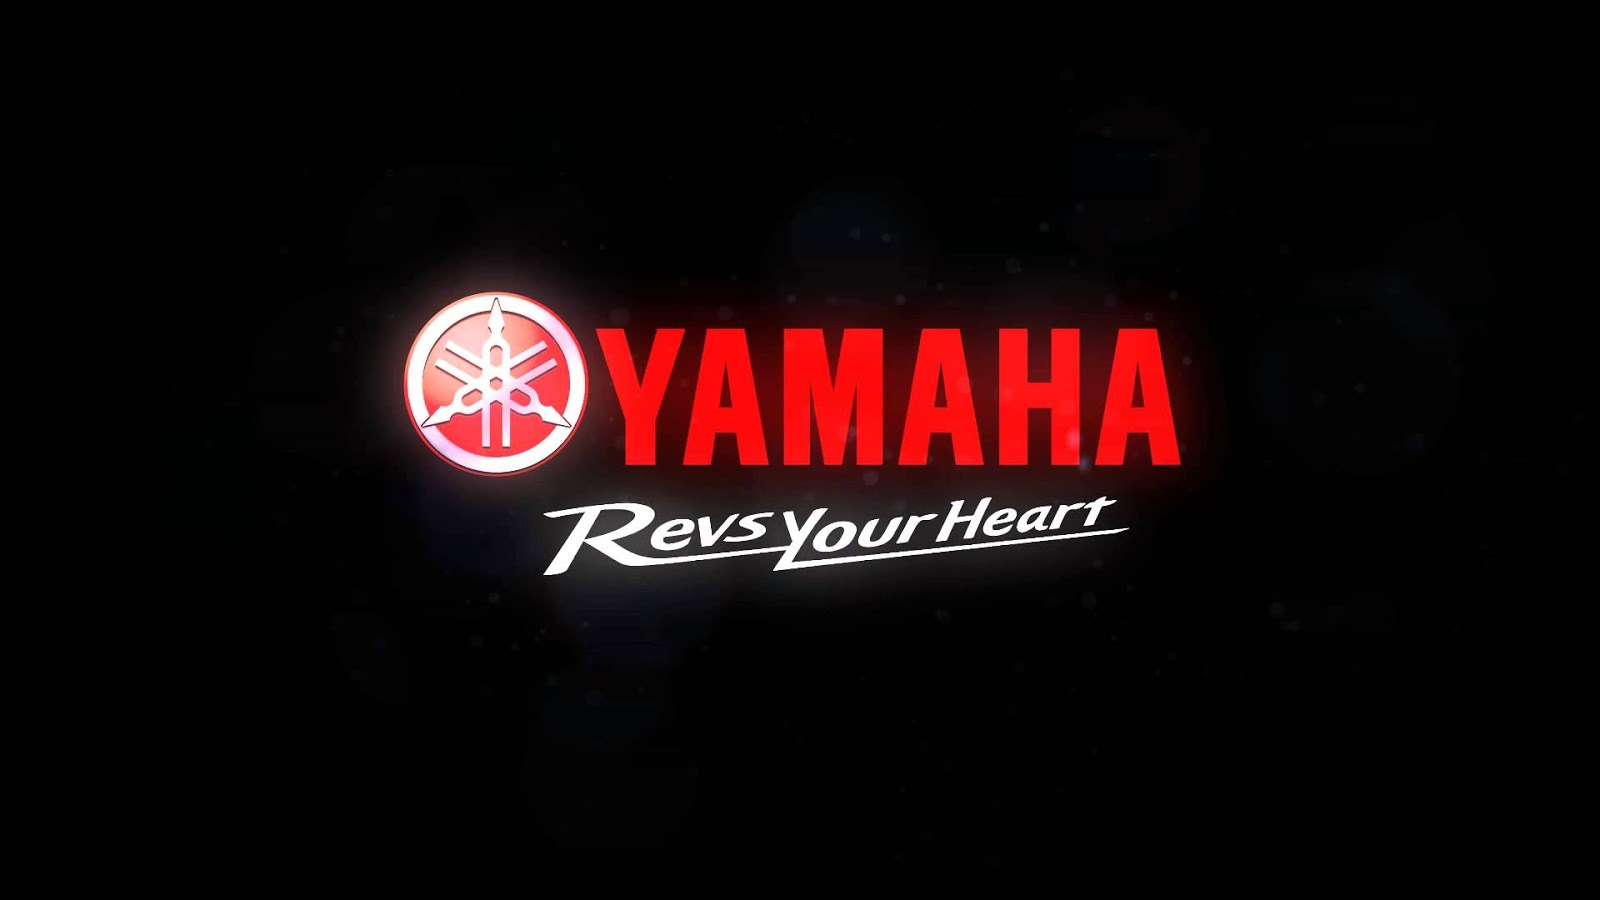 Iphone Default Wallpaper Imagehub Yamaha Logo Hd